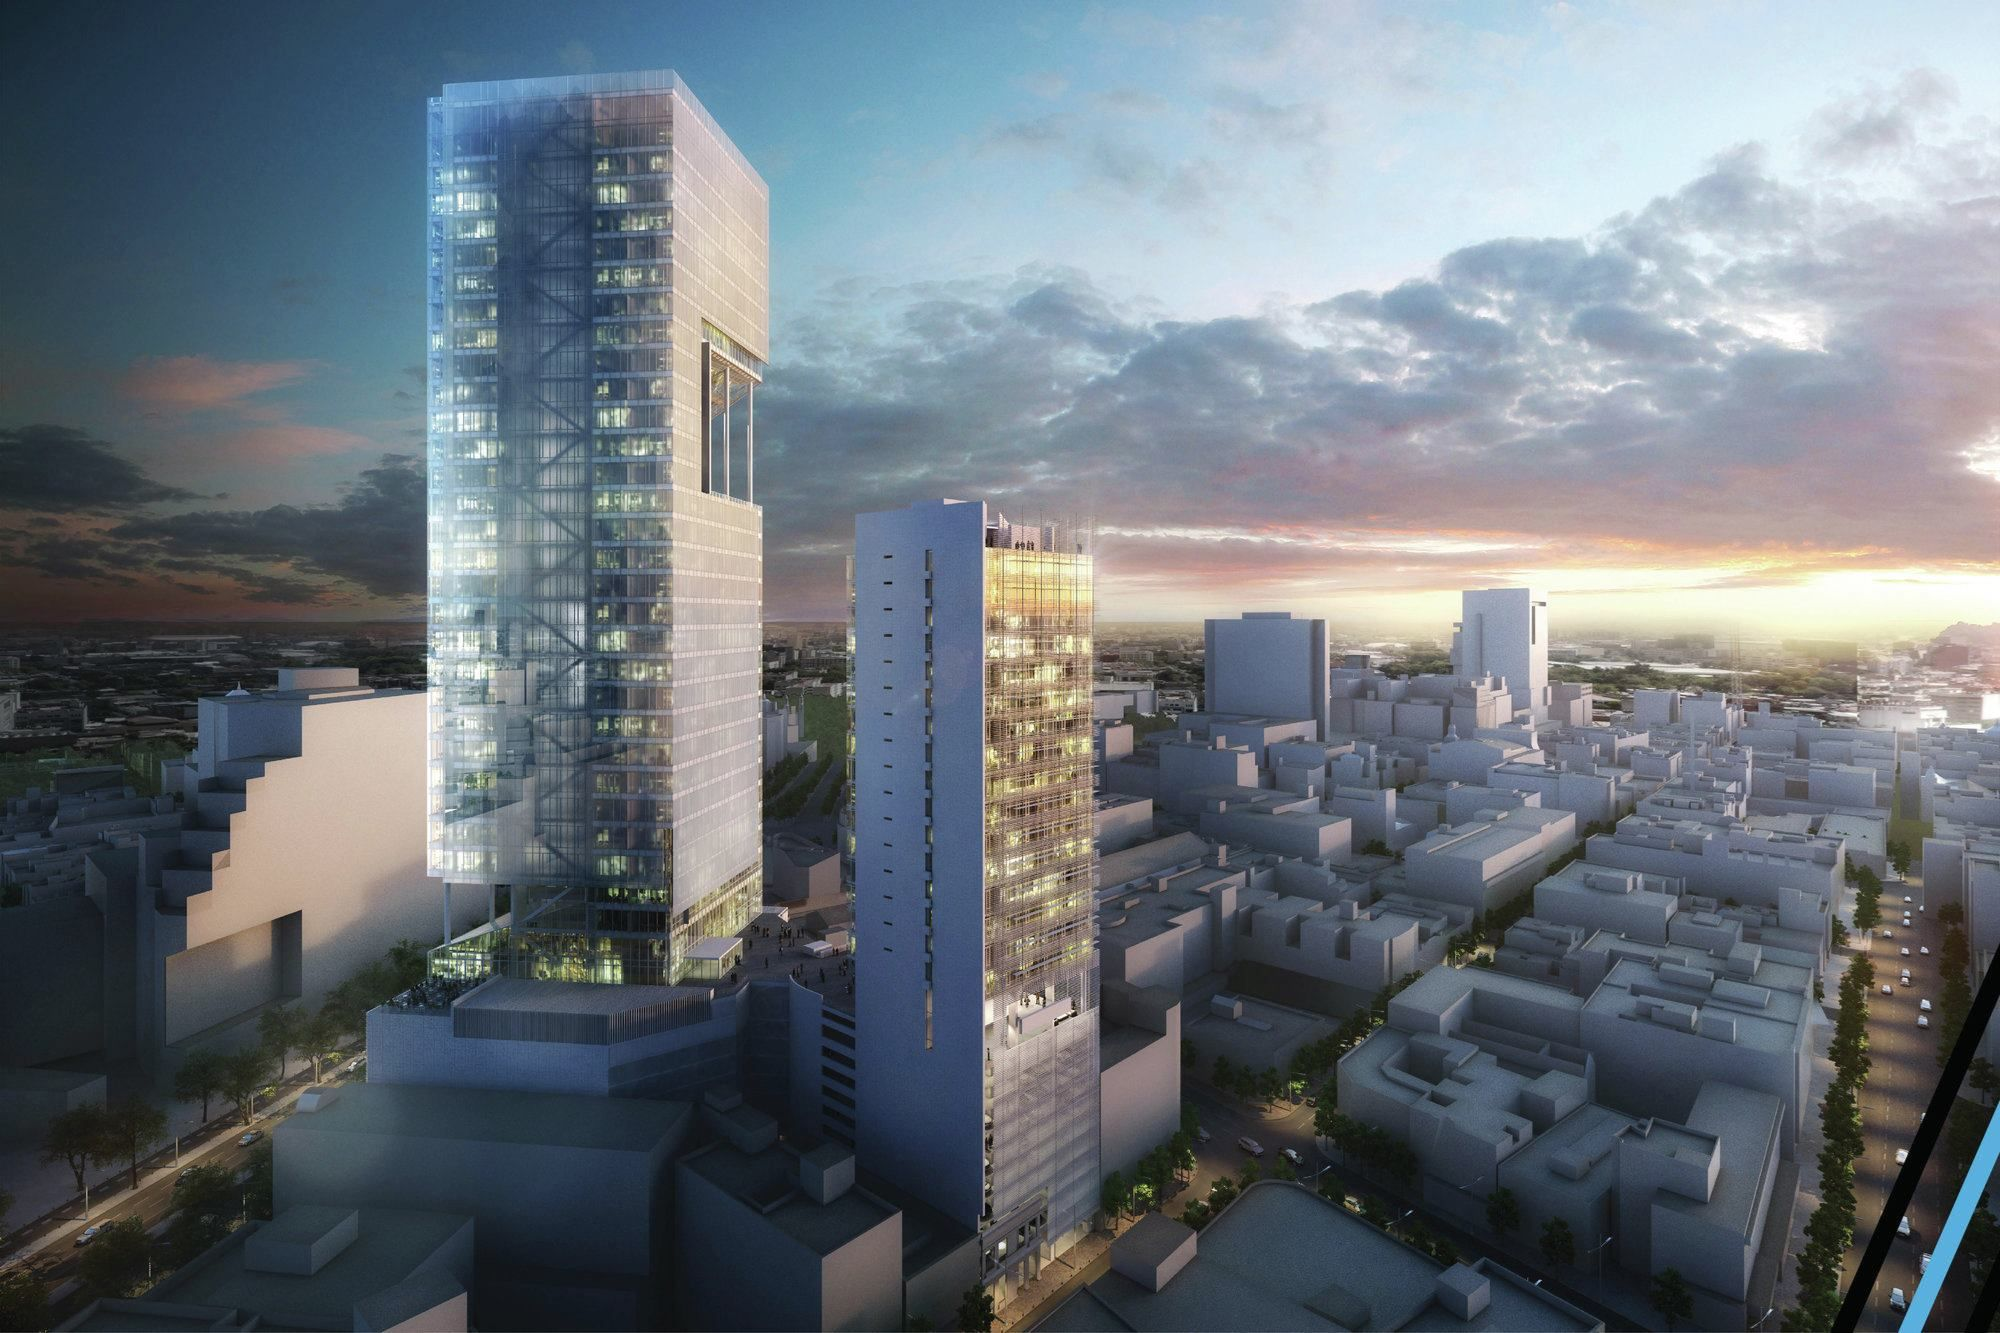 This new office and hotel complex in Mexico City was selected as an award winner in the 62nd annual Progressive Architecture Awards.